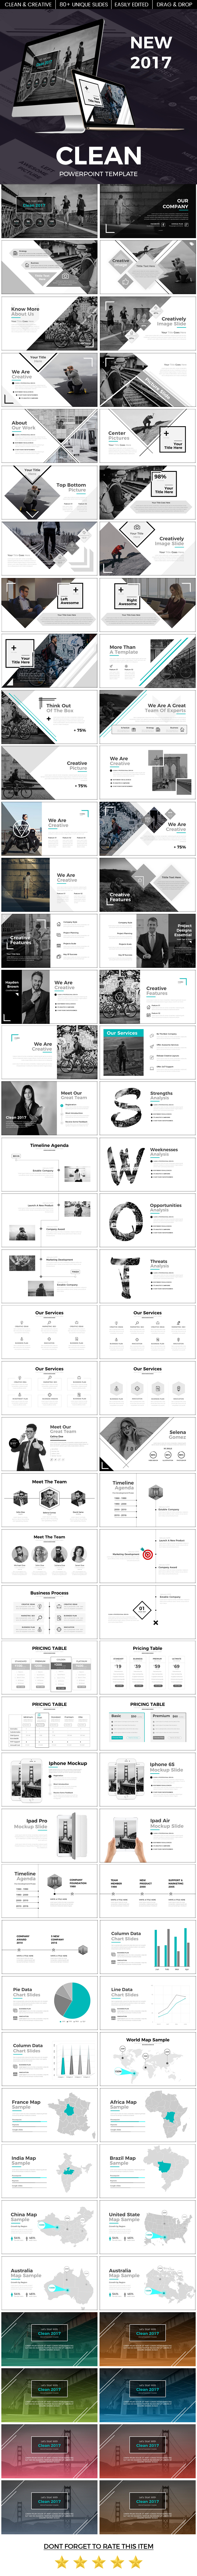 Clean 2017 Powerpoint Template - PowerPoint Templates Presentation Templates